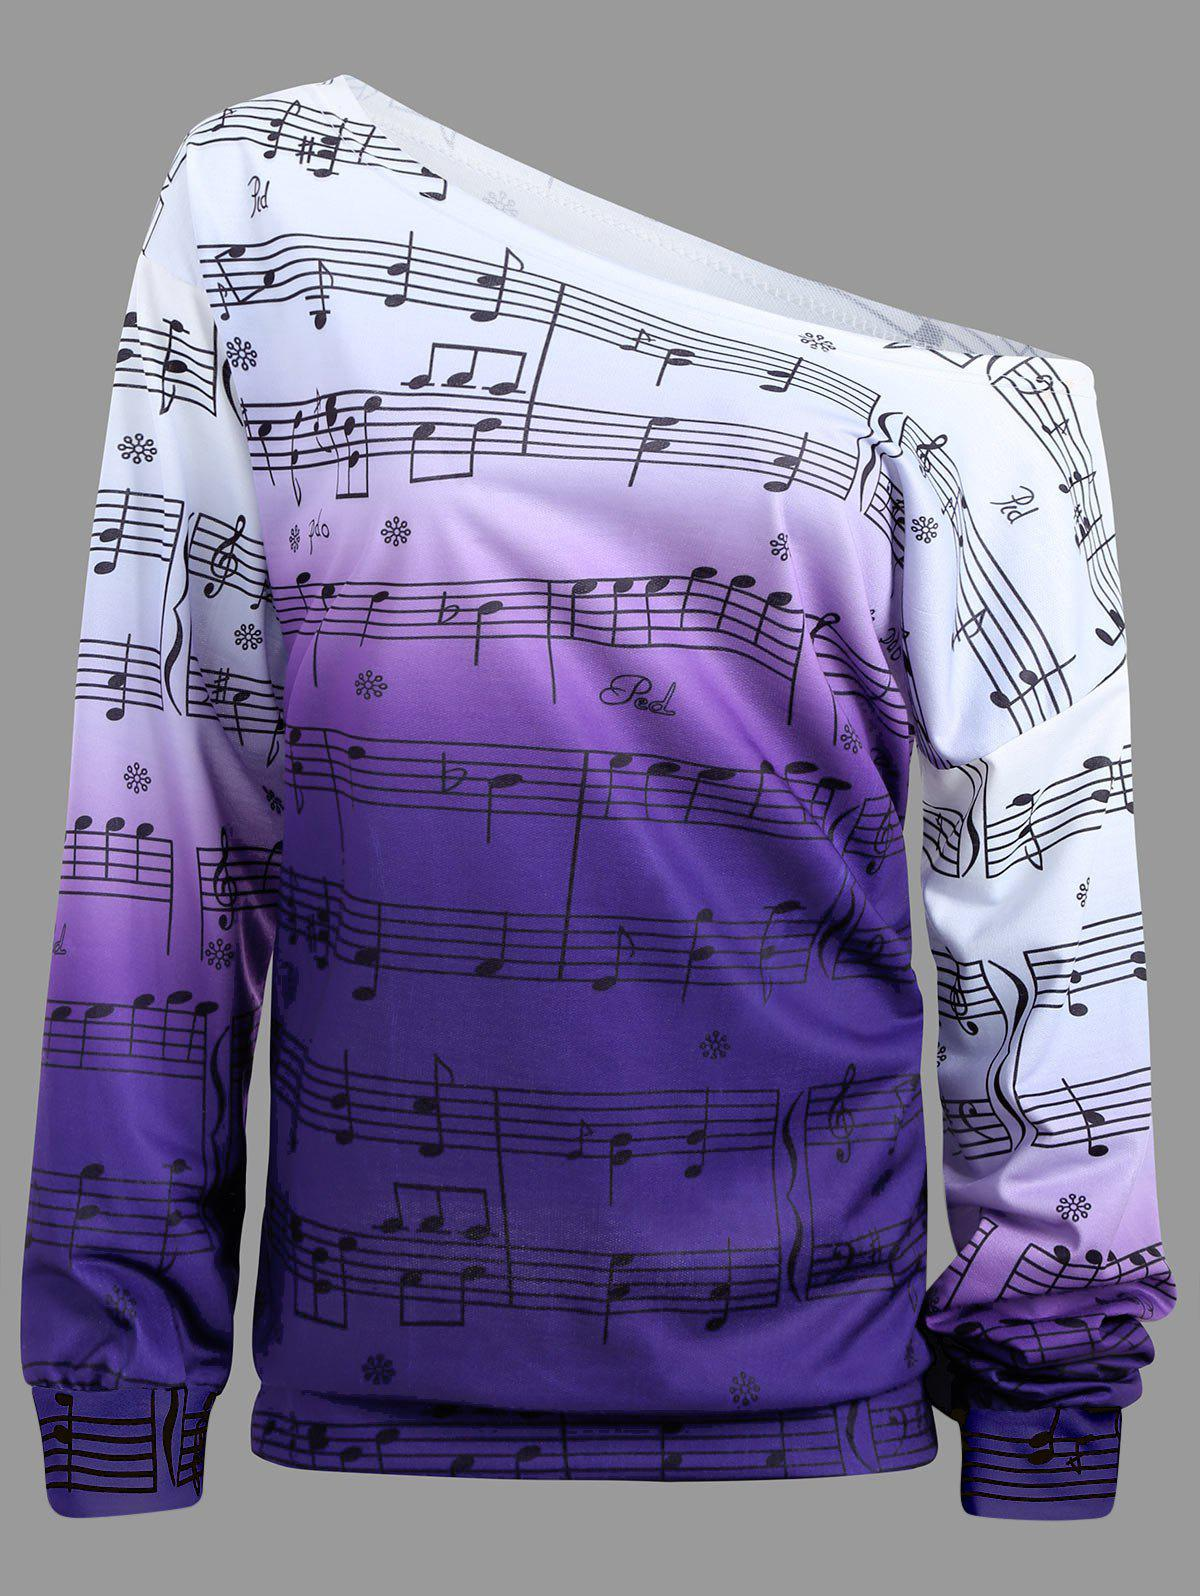 Musical Notes Printed Long Sleeves SweatshirtWOMEN<br><br>Size: M; Color: PURPLE; Material: Polyester; Shirt Length: Regular; Sleeve Length: Full; Style: Fashion; Pattern Style: Print; Season: Fall,Winter; Weight: 0.3500kg; Package Contents: 1 x Sweatshirt;